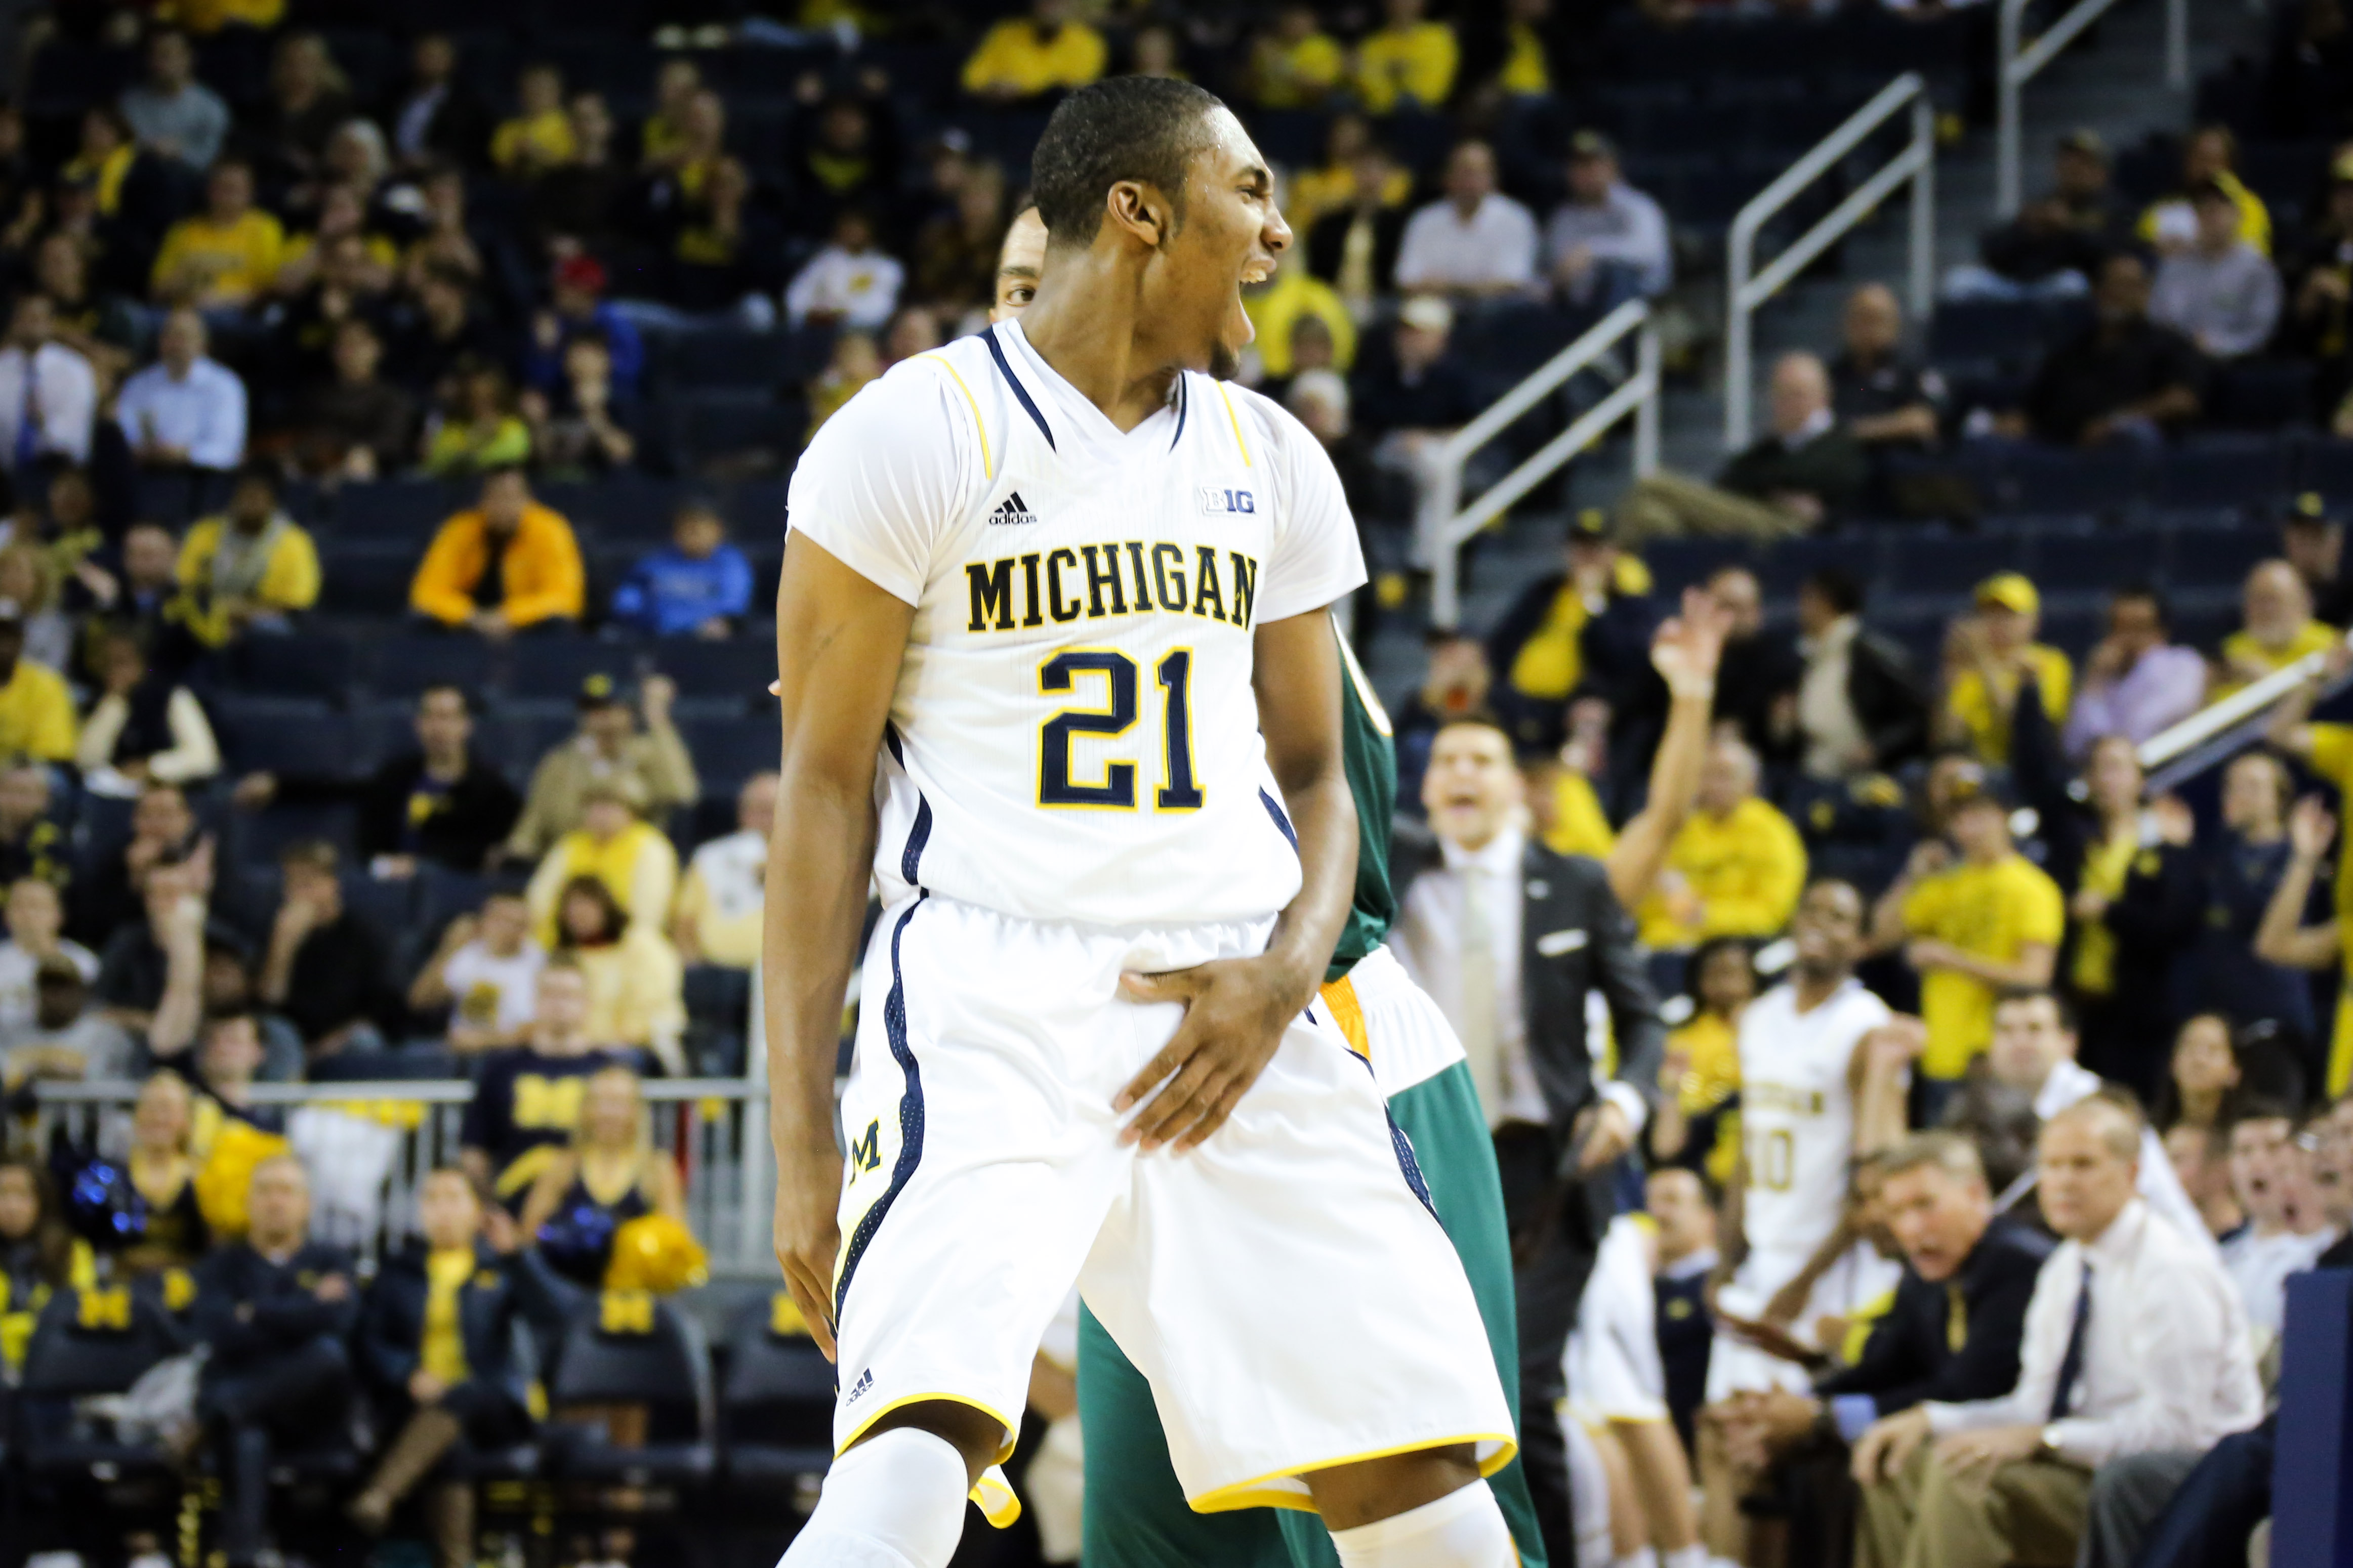 Michigan 79, Wayne State 60-7